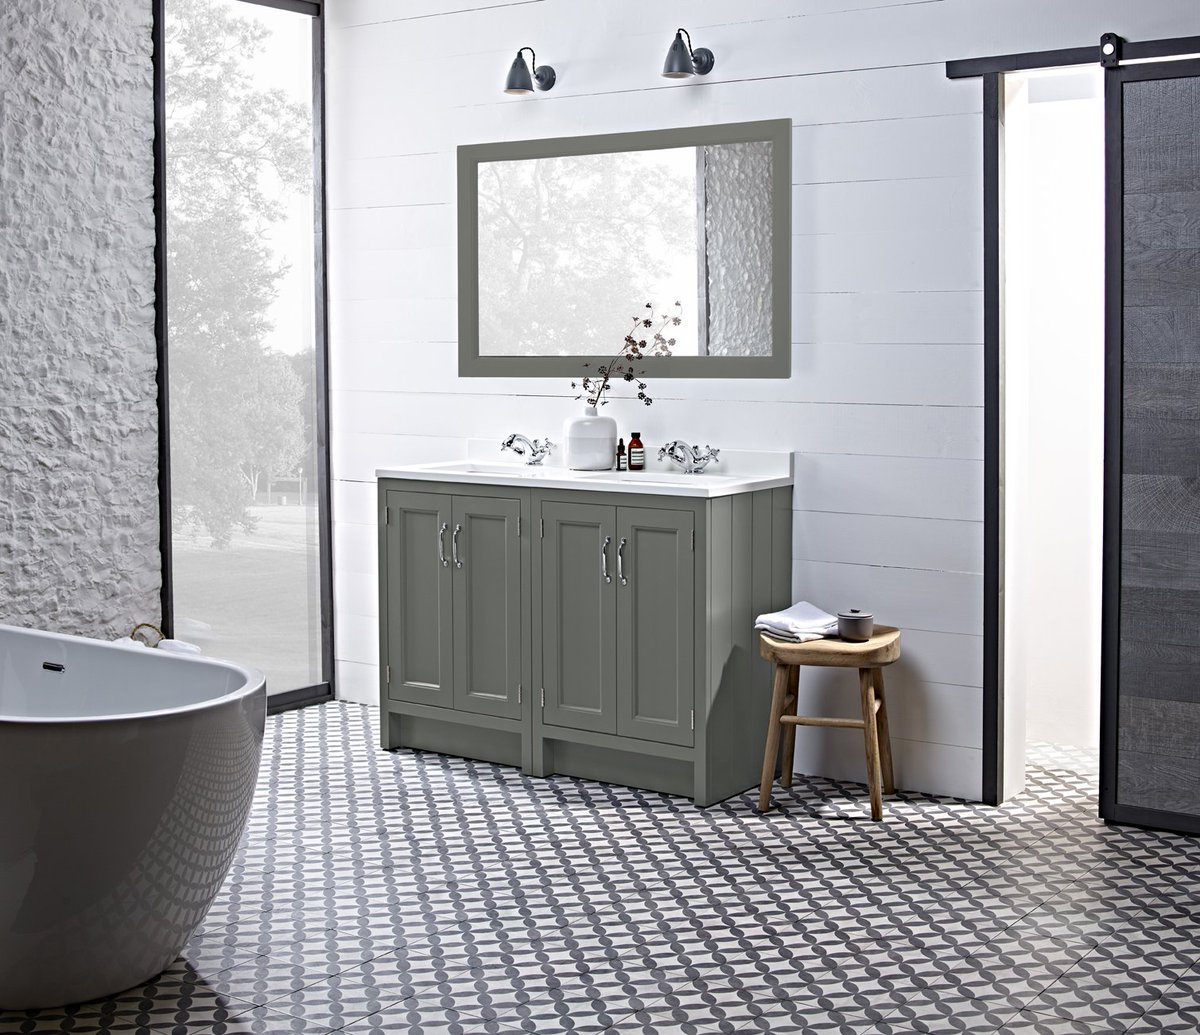 simply bathrooms added   Roper Rhodes Ltd  roperrhodesltd. simply bathrooms   simplybathroom    Twitter